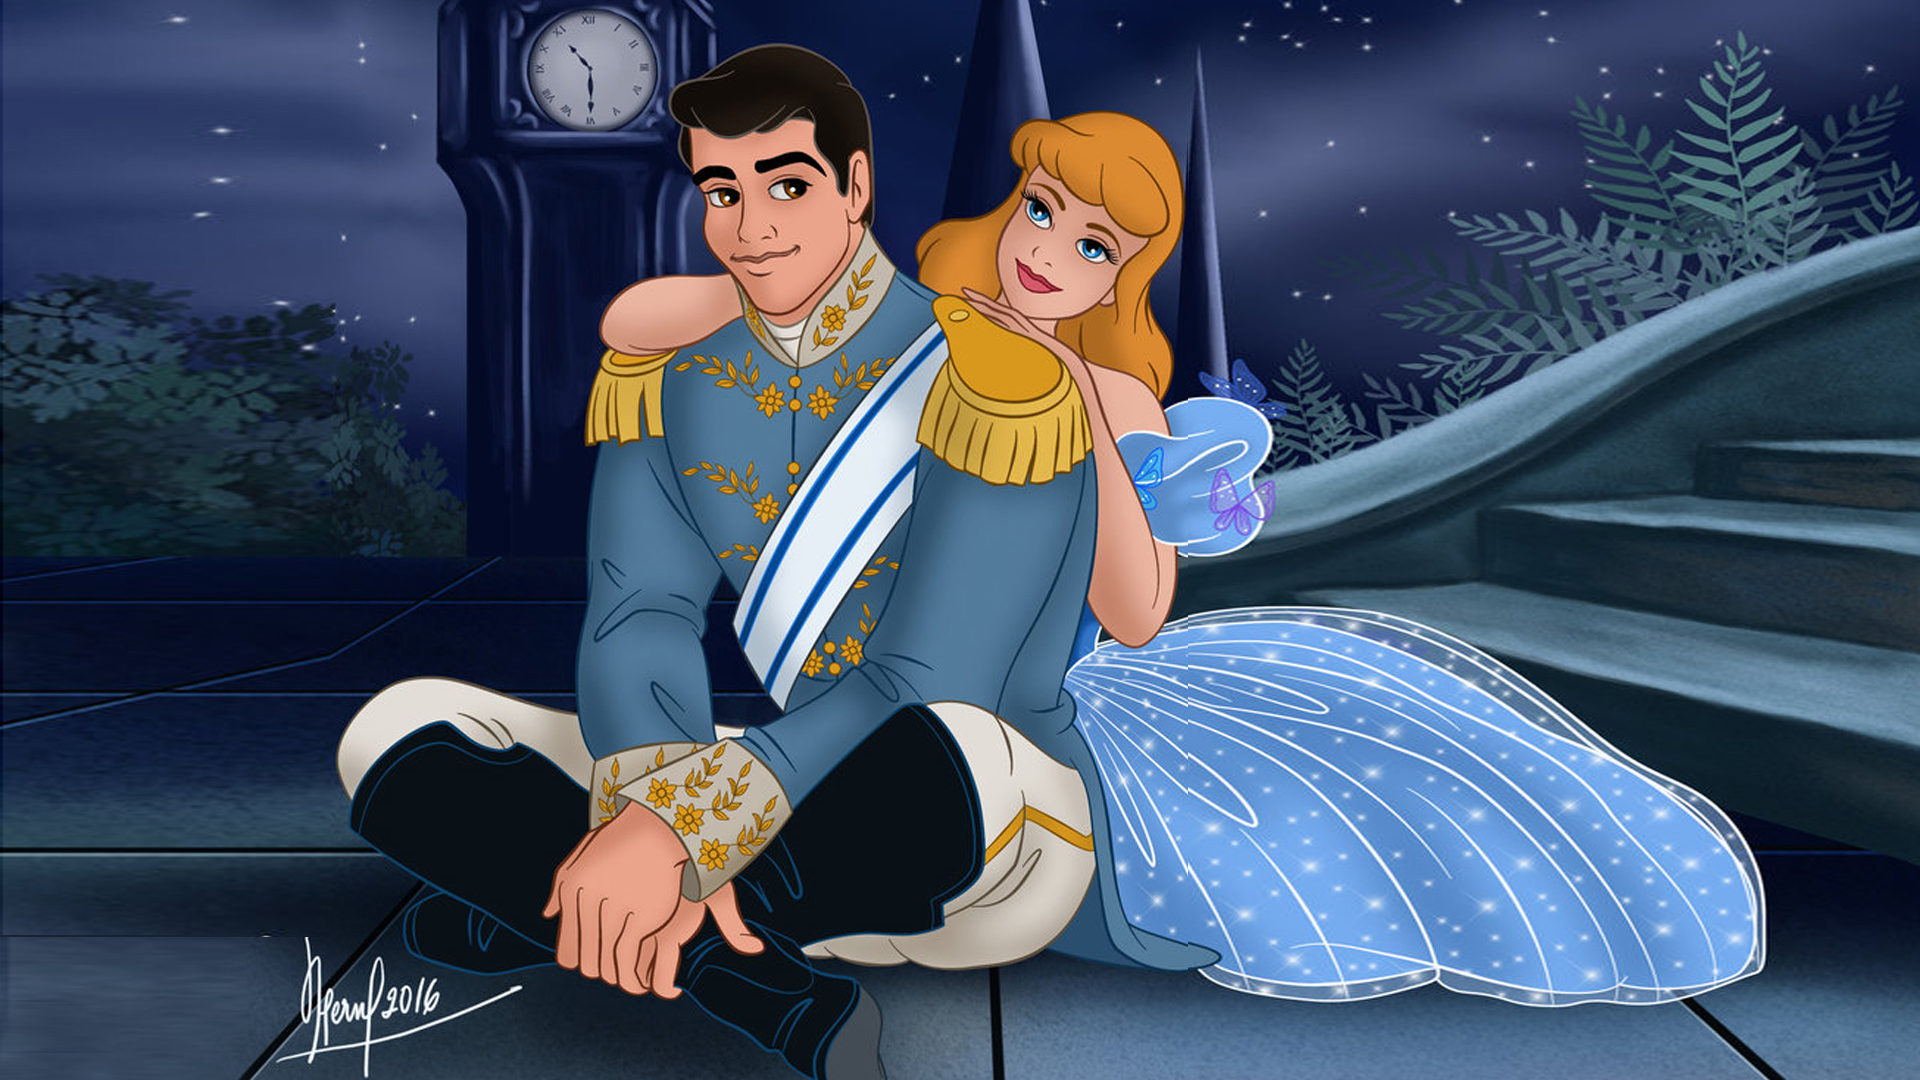 Animated Wallpapers For Pc Desktop Free Download Cinderella And Prince Charming Romantic Evening Love